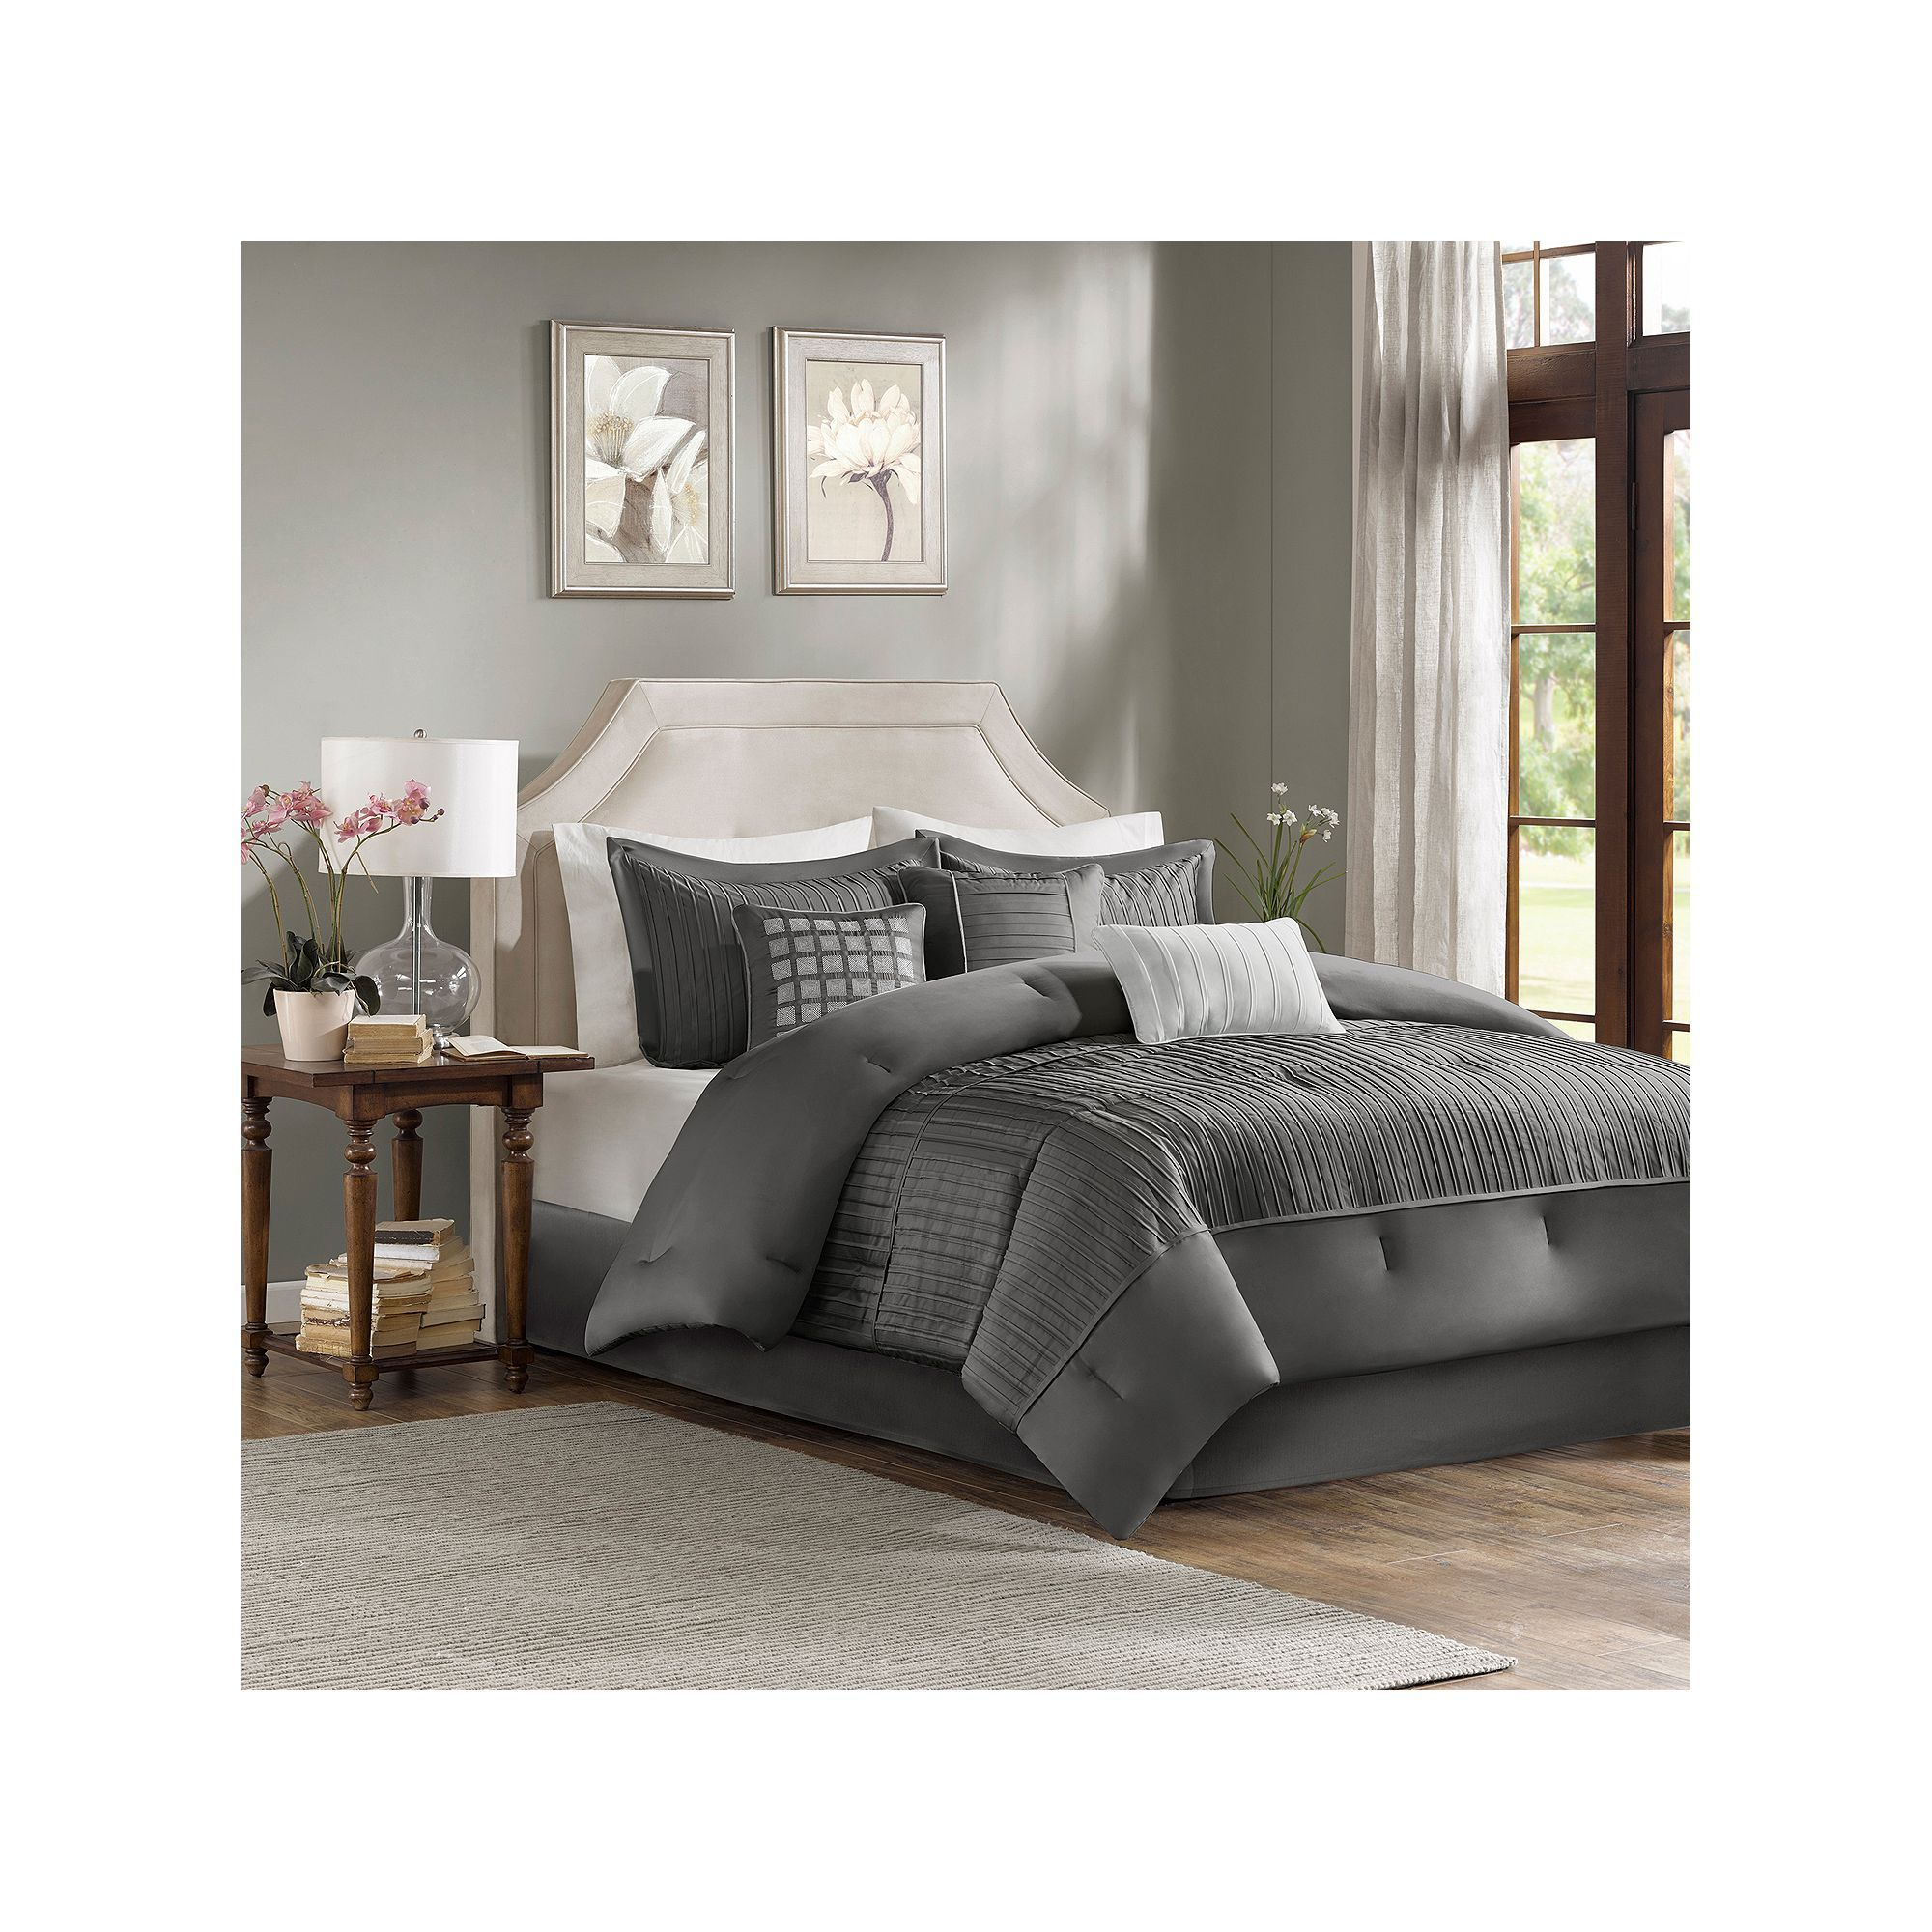 linen full paisley set king madison rough park coverlet piece target bedding quilted cover duvet queen covers size of linens